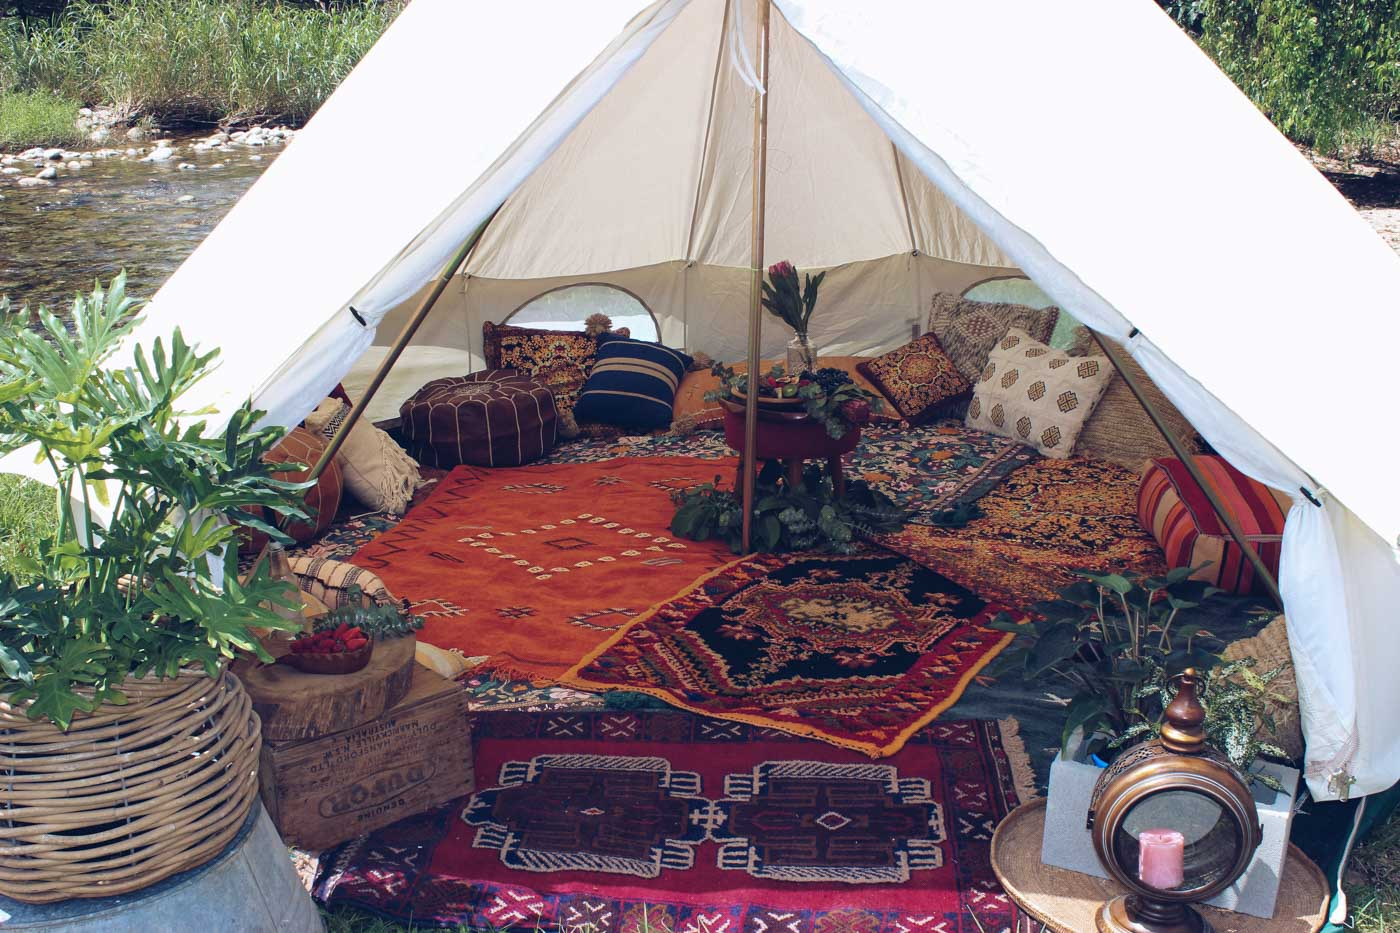 the_Collection_co_grazing_table_cairns_weddings_catering_grazing_platter_hire_pop_up_picnic_bell_tent_event_hire_styling-40-2.jpg